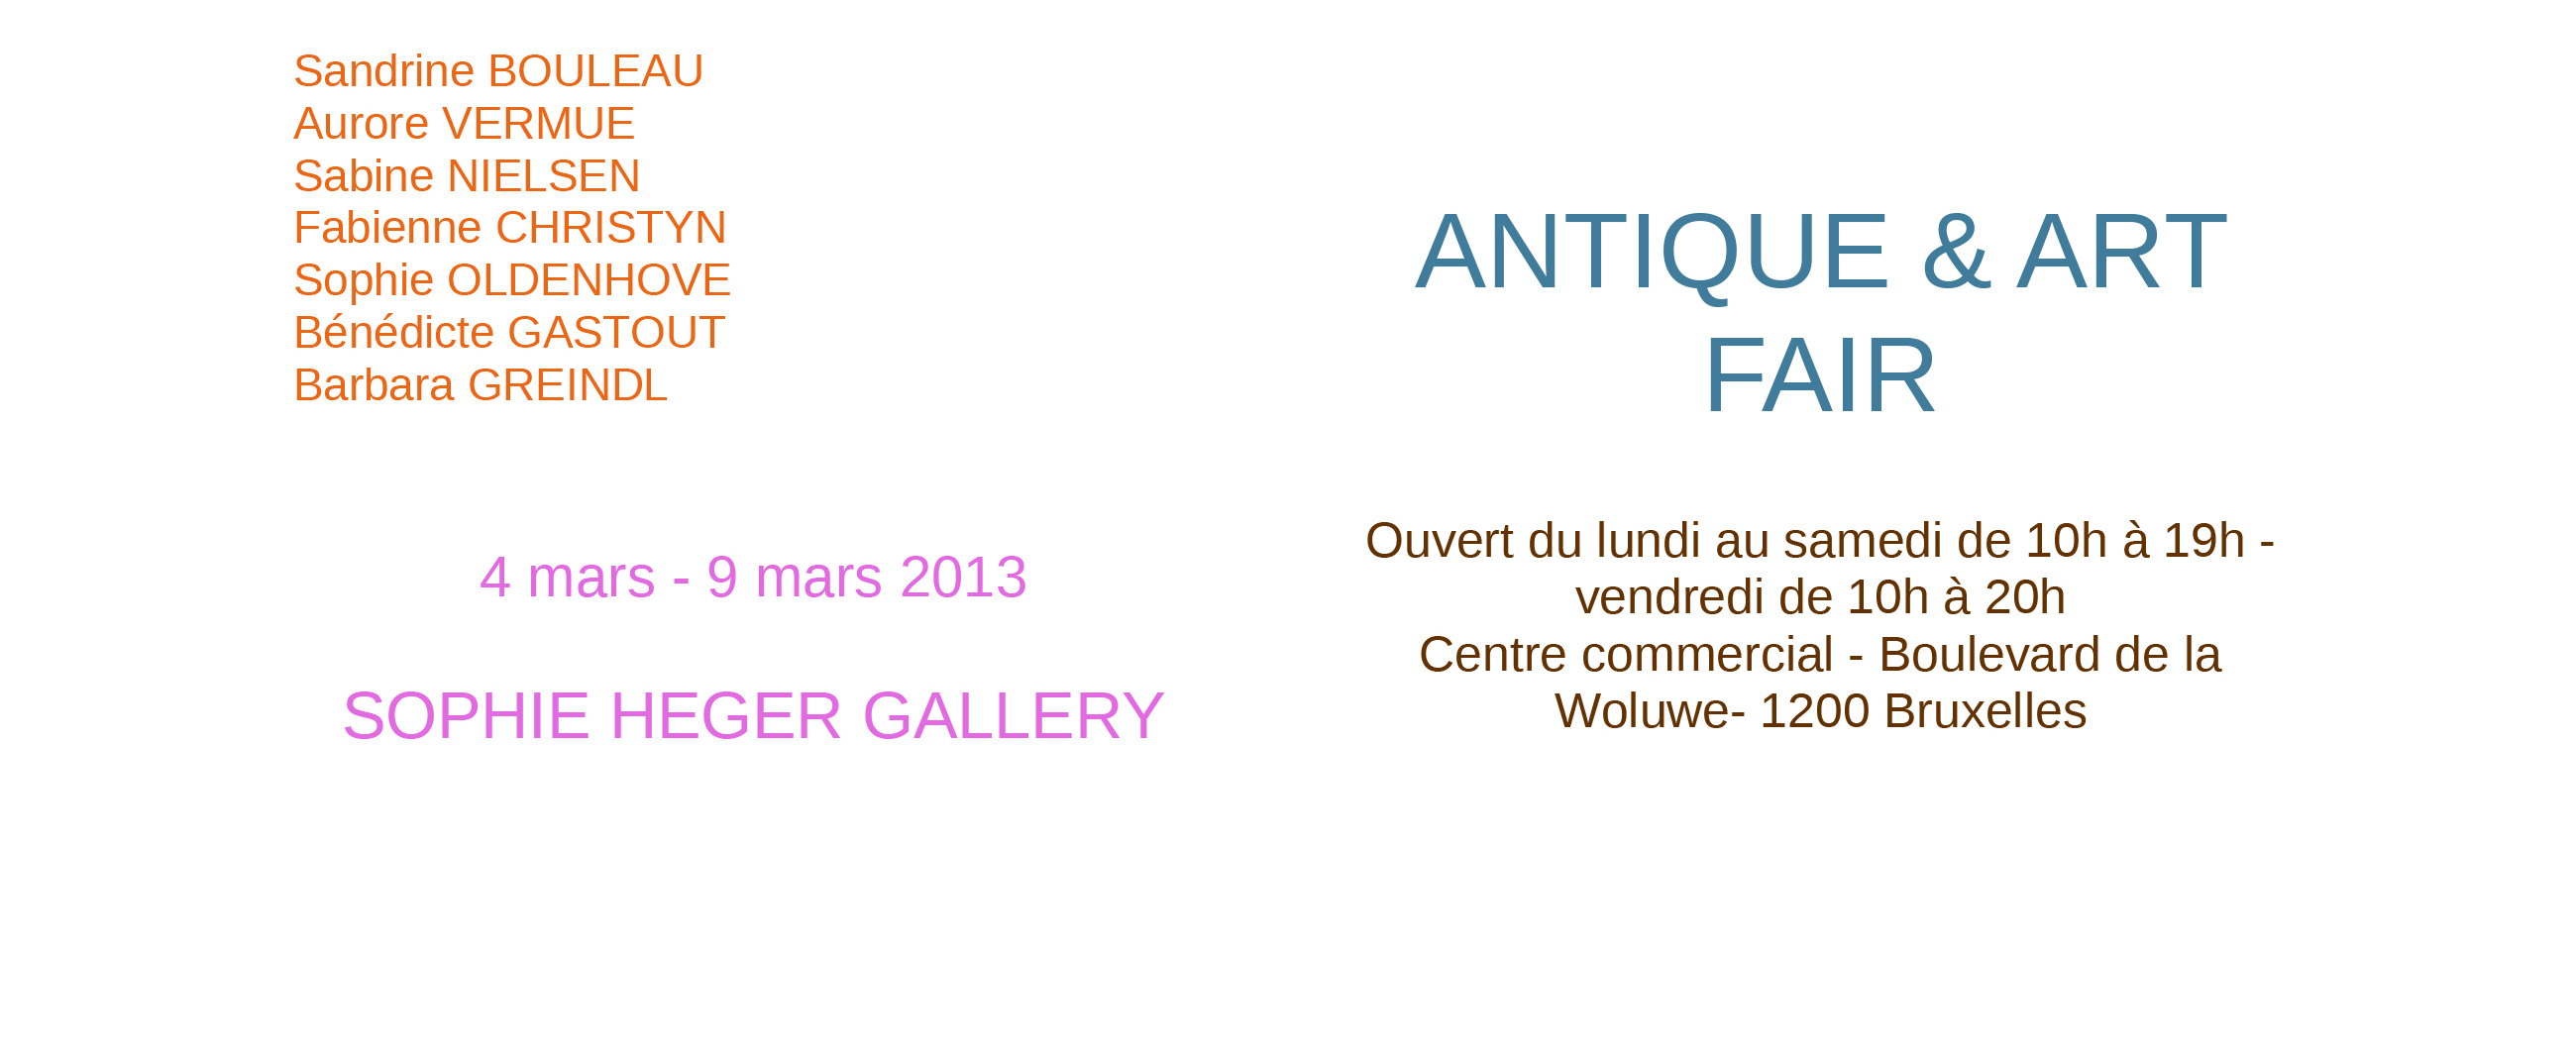 Antique Art Fair